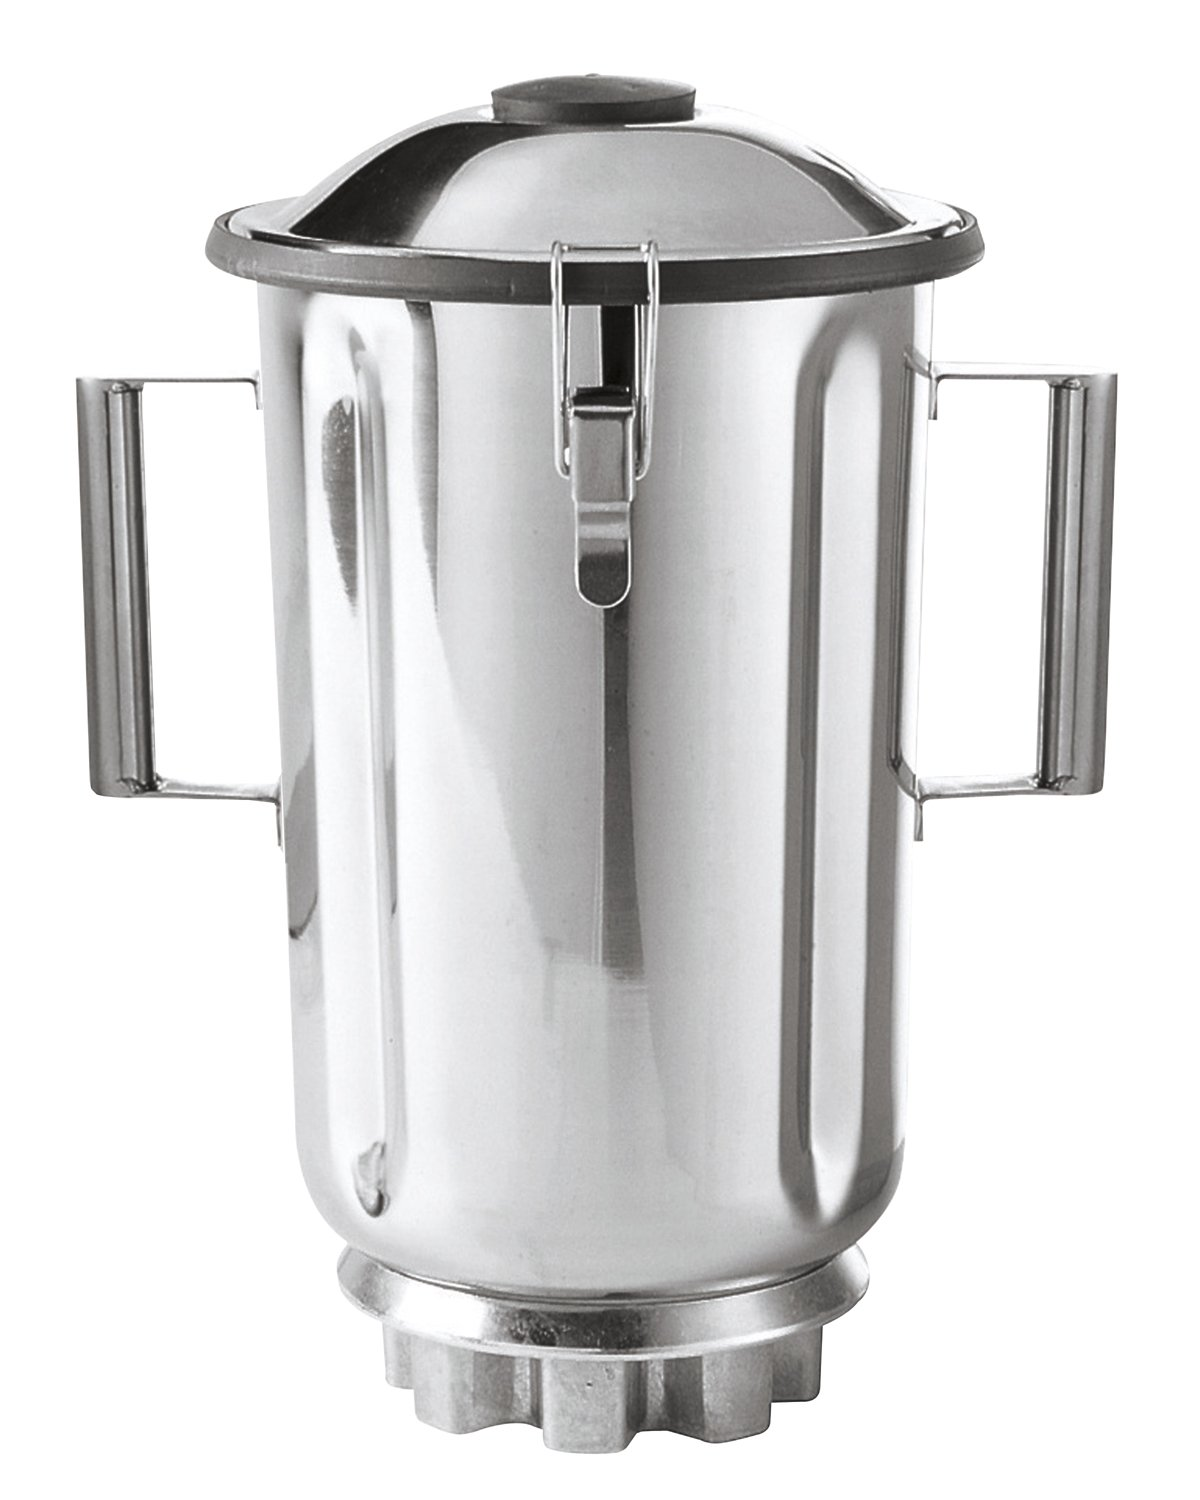 Hamilton Beach Commercial 6126-990 1 gal/128 oz./3.8 L Container, Stainless Steel